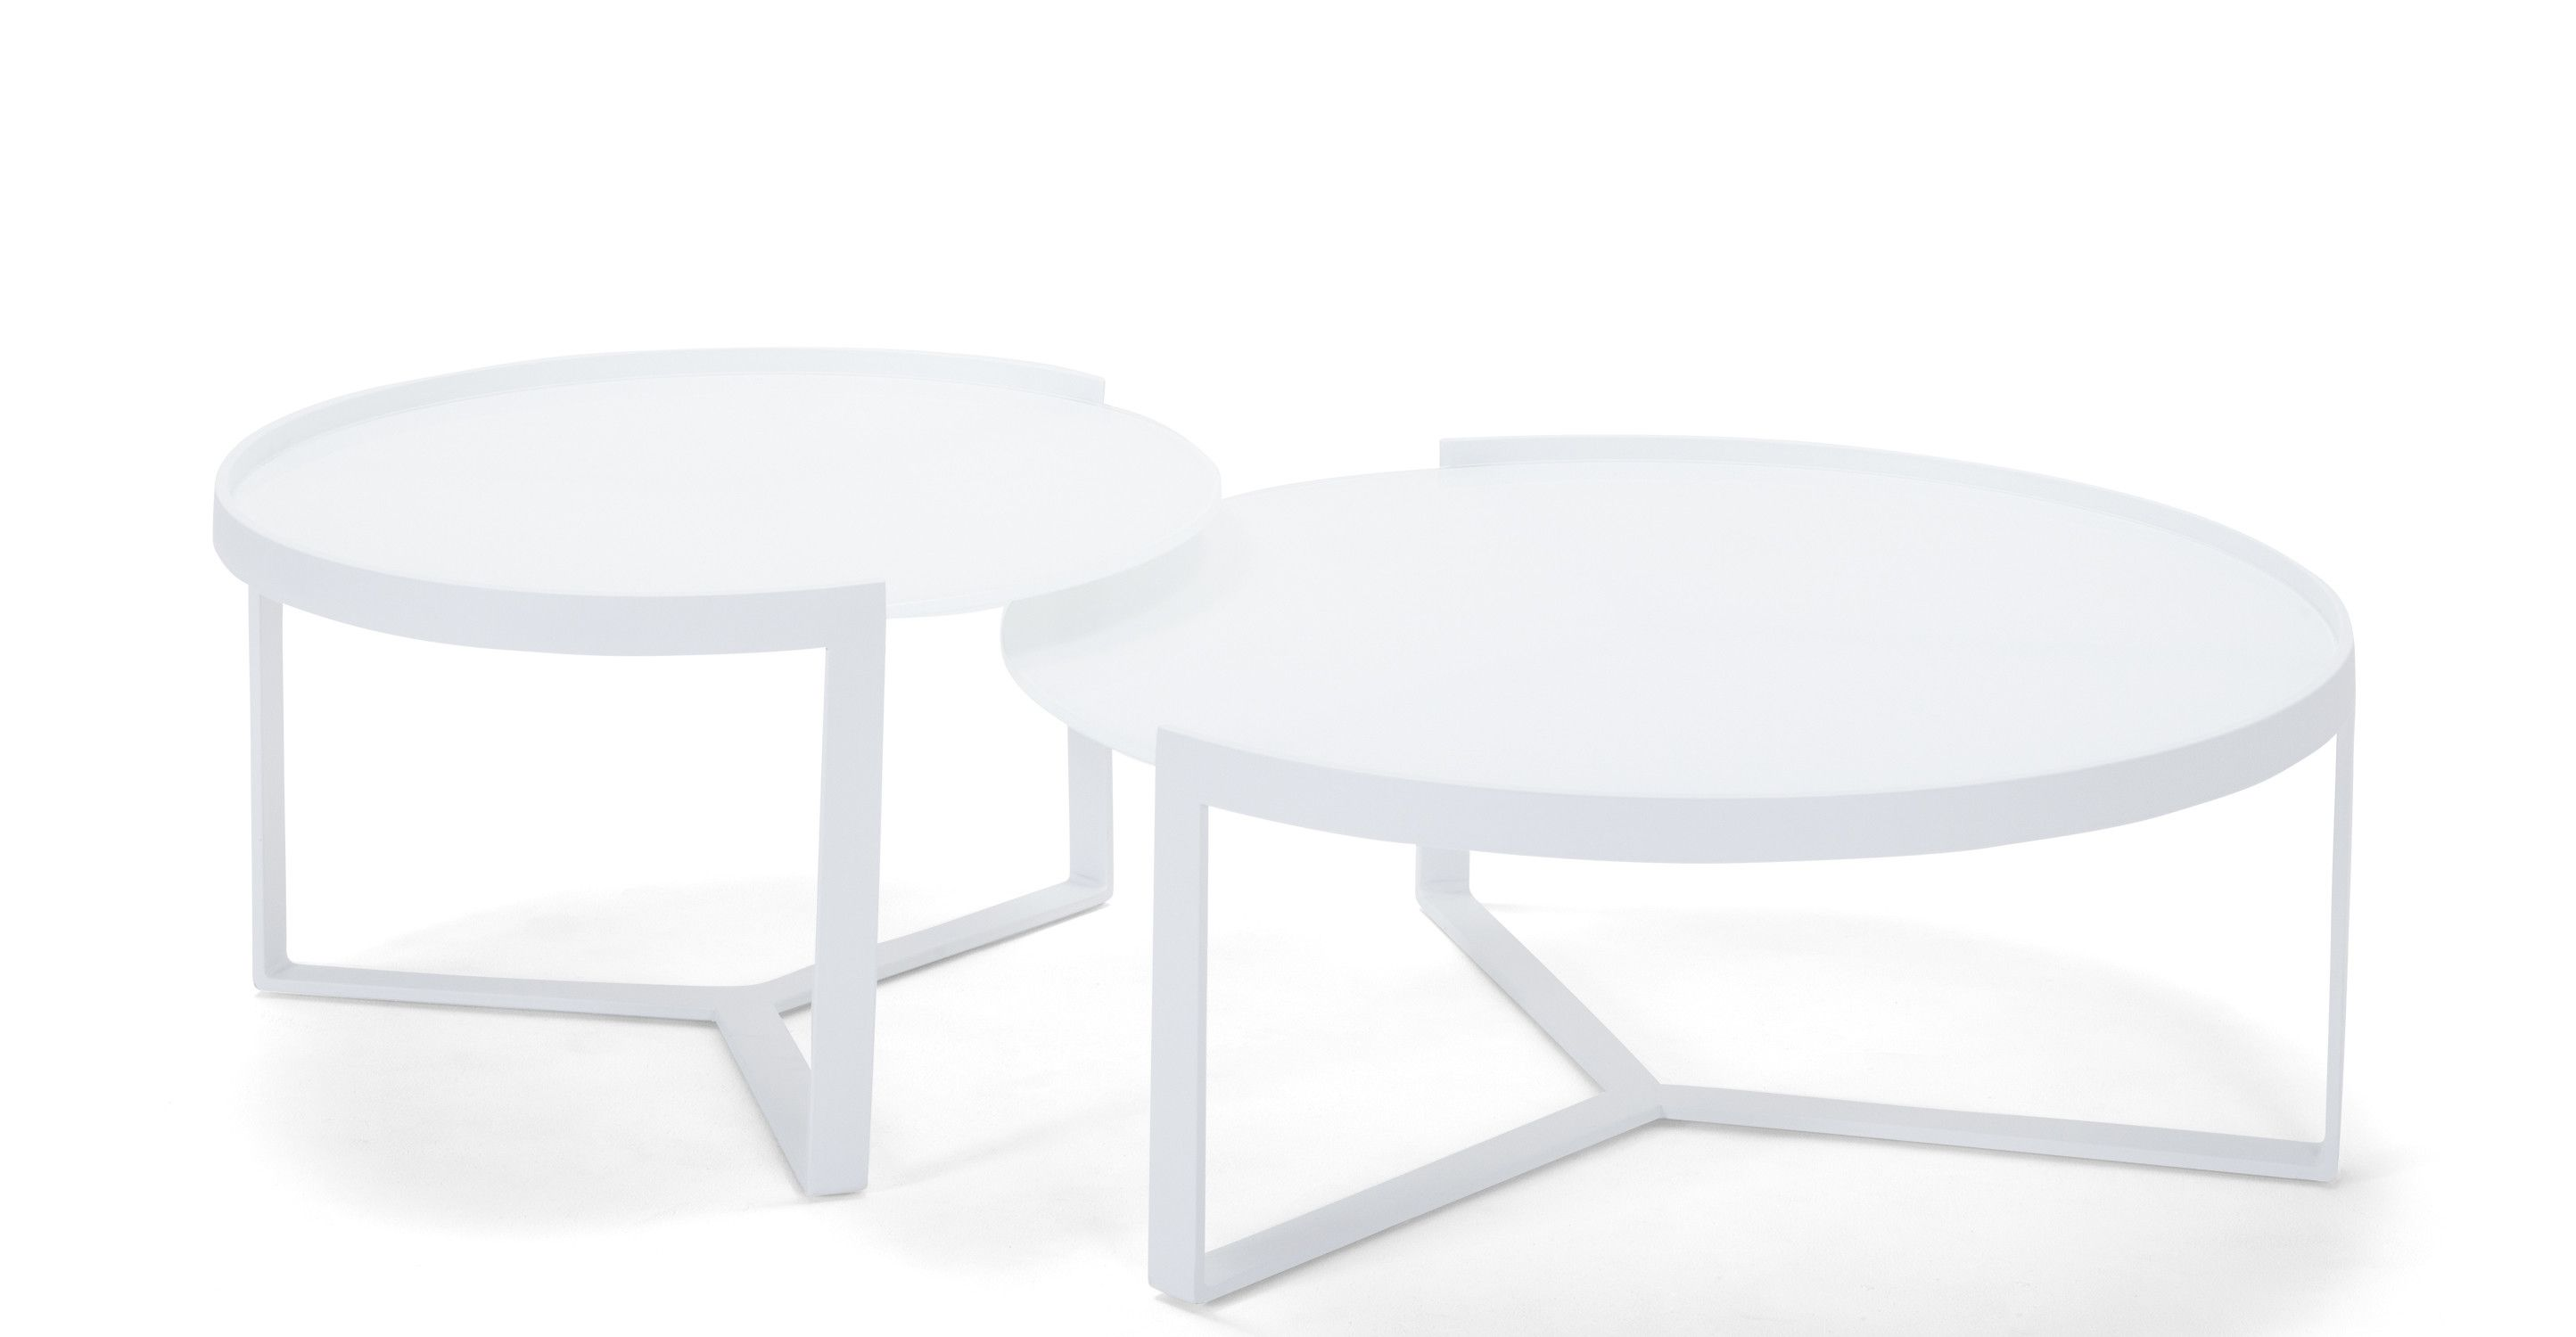 Aula coffee table white from made express delivery aula coffee table white from made express delivery transform your living space with great design appreciating simple geometry the angular m geotapseo Images